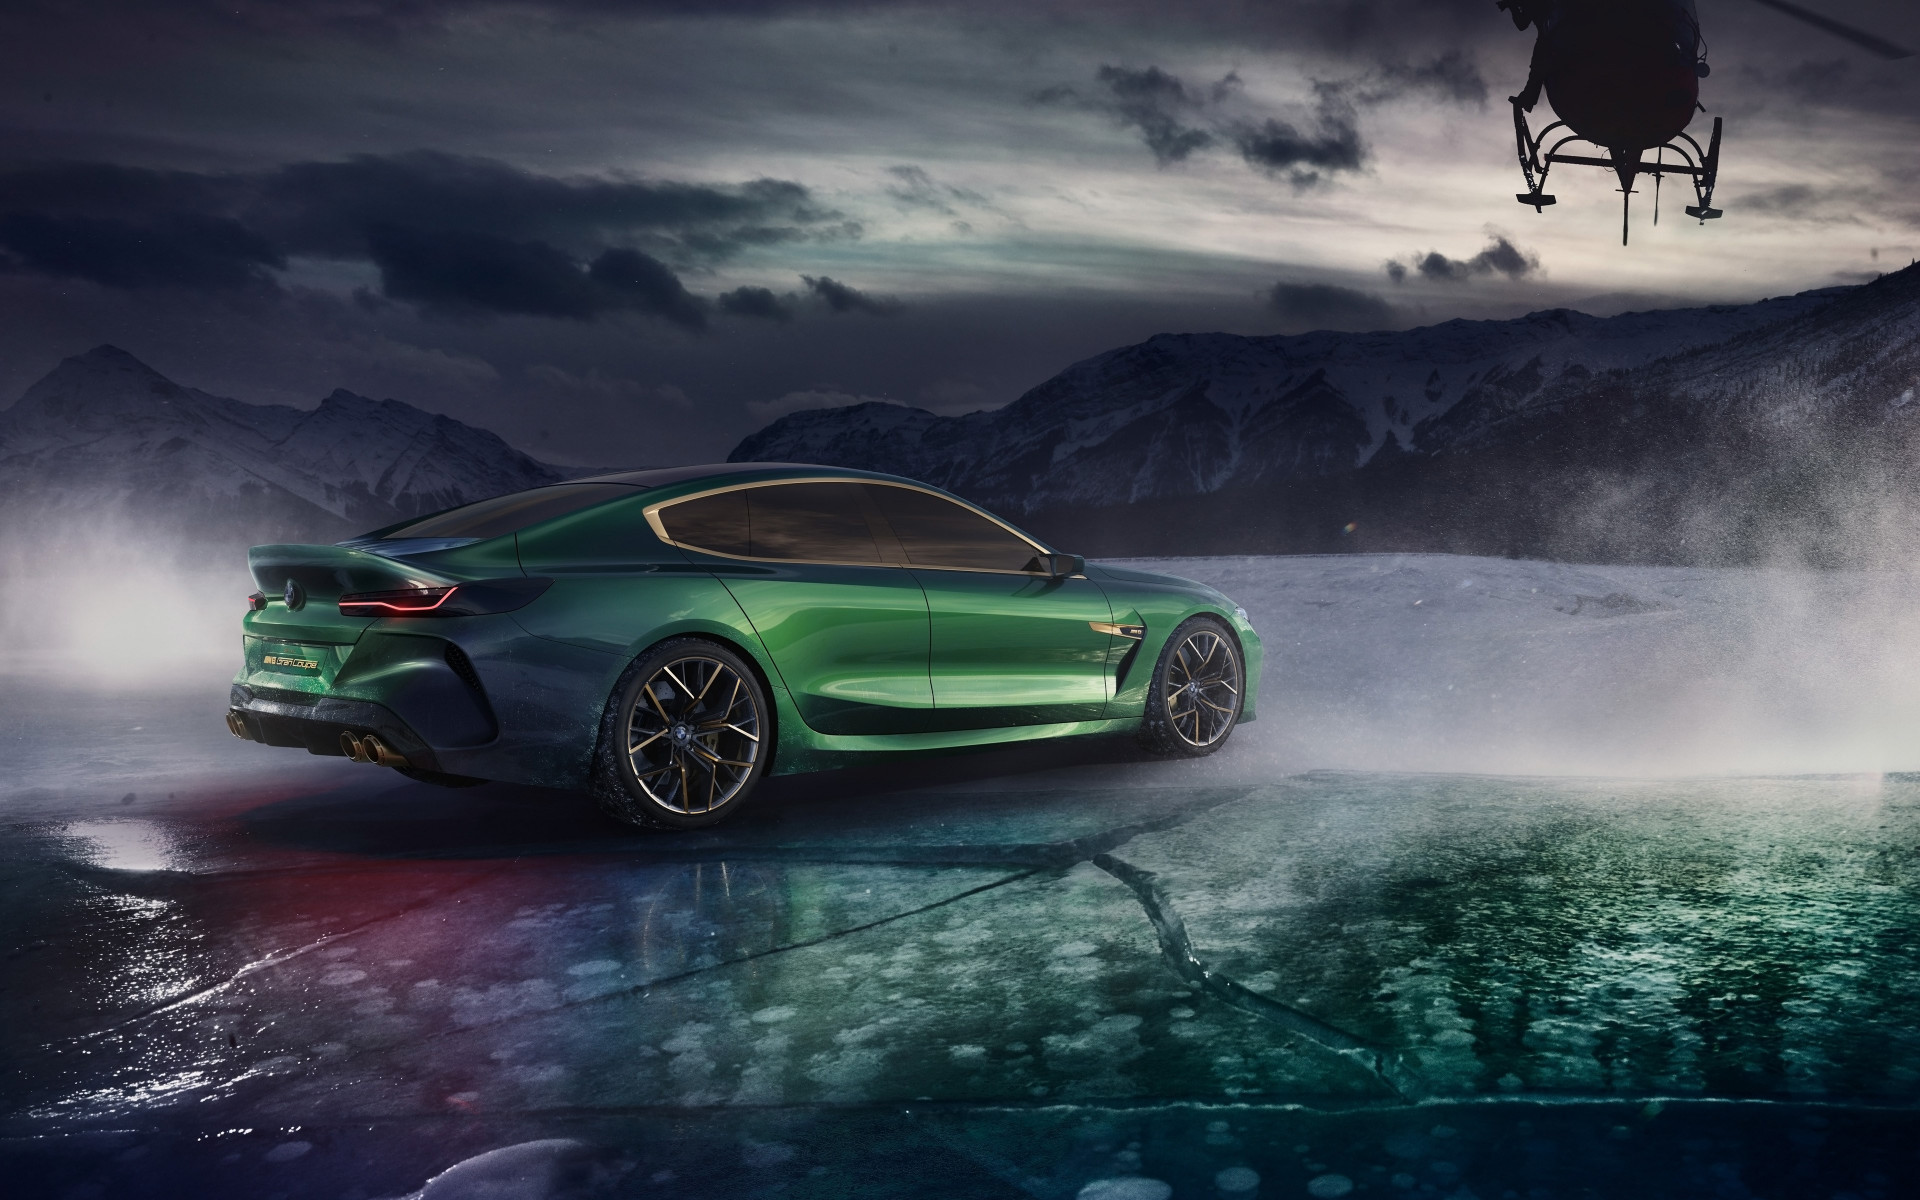 BMW Concept M8 Gran Coupe 2018 rear side wallpaper 1920x1200